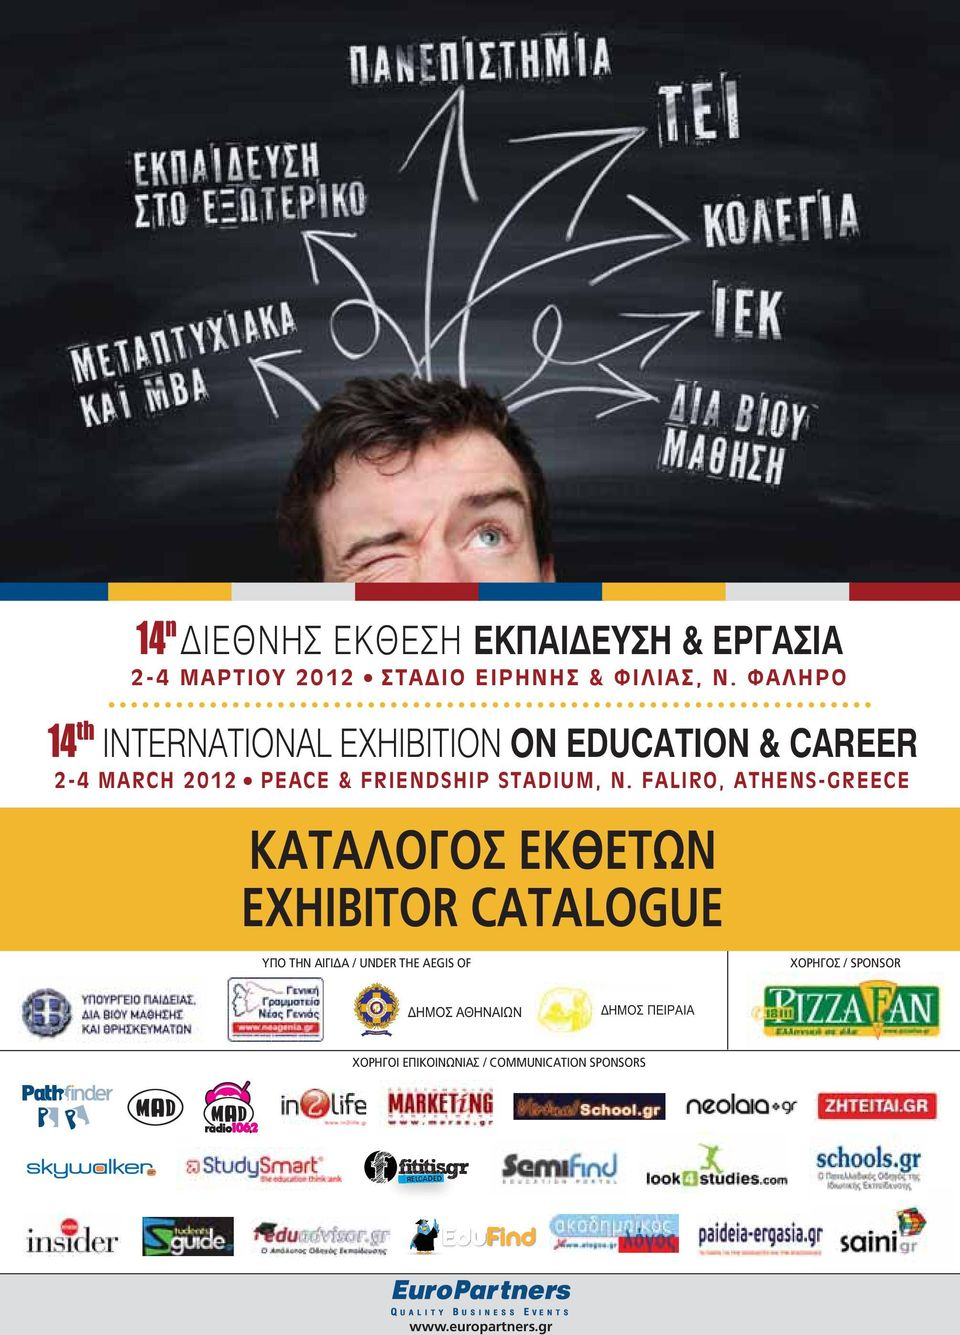 N. FALIRO, ATHENS-GREECE KΑΤΑΛΟΓΟΣ ΕΚΘΕΤΩΝ EXHIBITOR CATALOGUE ΥΠΟ ΤΗΝ ΑΙΓΙΔΑ / UNDER THE AEGIS OF